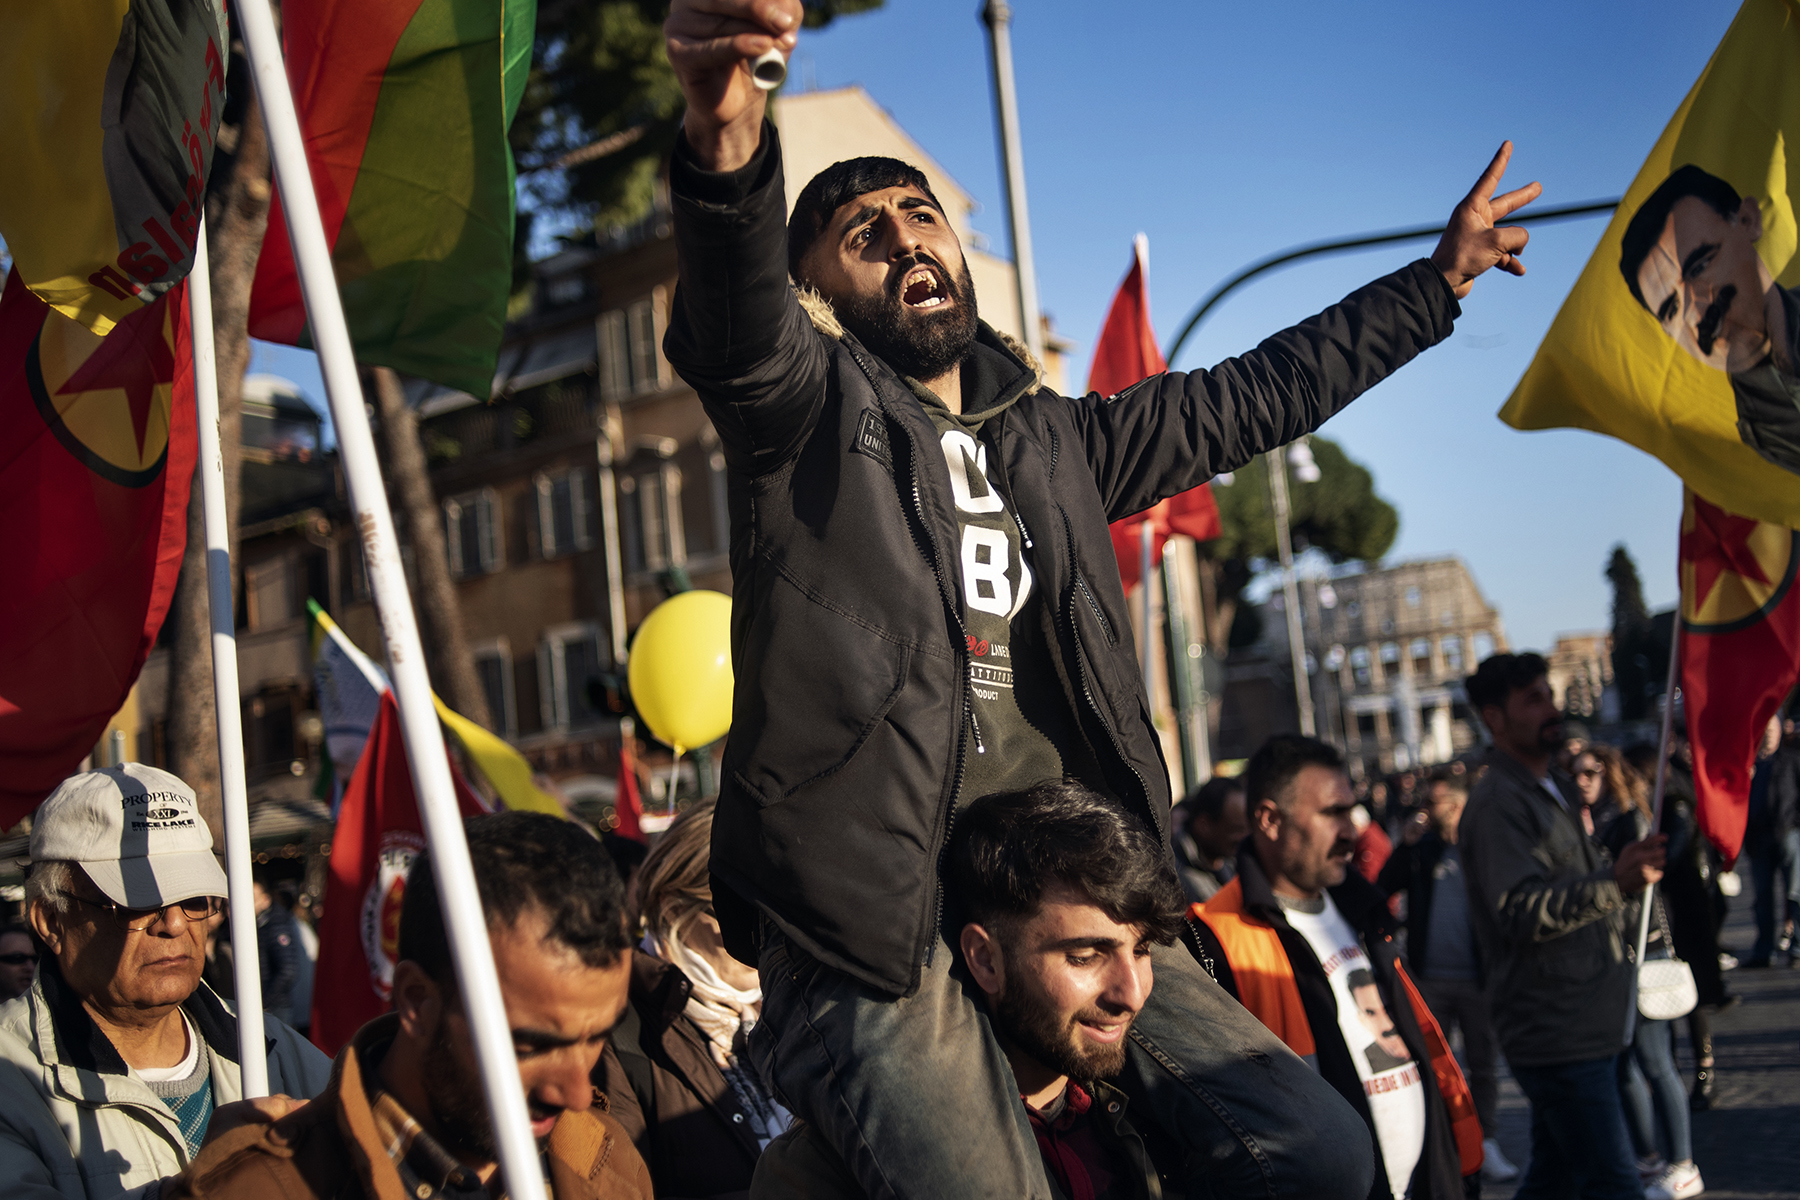 A Kurdish protestor flashes the V sign as he takes part in a protest rally near the Coliseum (Colosseum, Colosseo) in Rome on February 16, 2019, part of a nationwide demonstration organised by Kurdish communities in Italy. The protests are being held to call for the release of jailed PKK leader Abdullah Ocalan and other political prisoners.